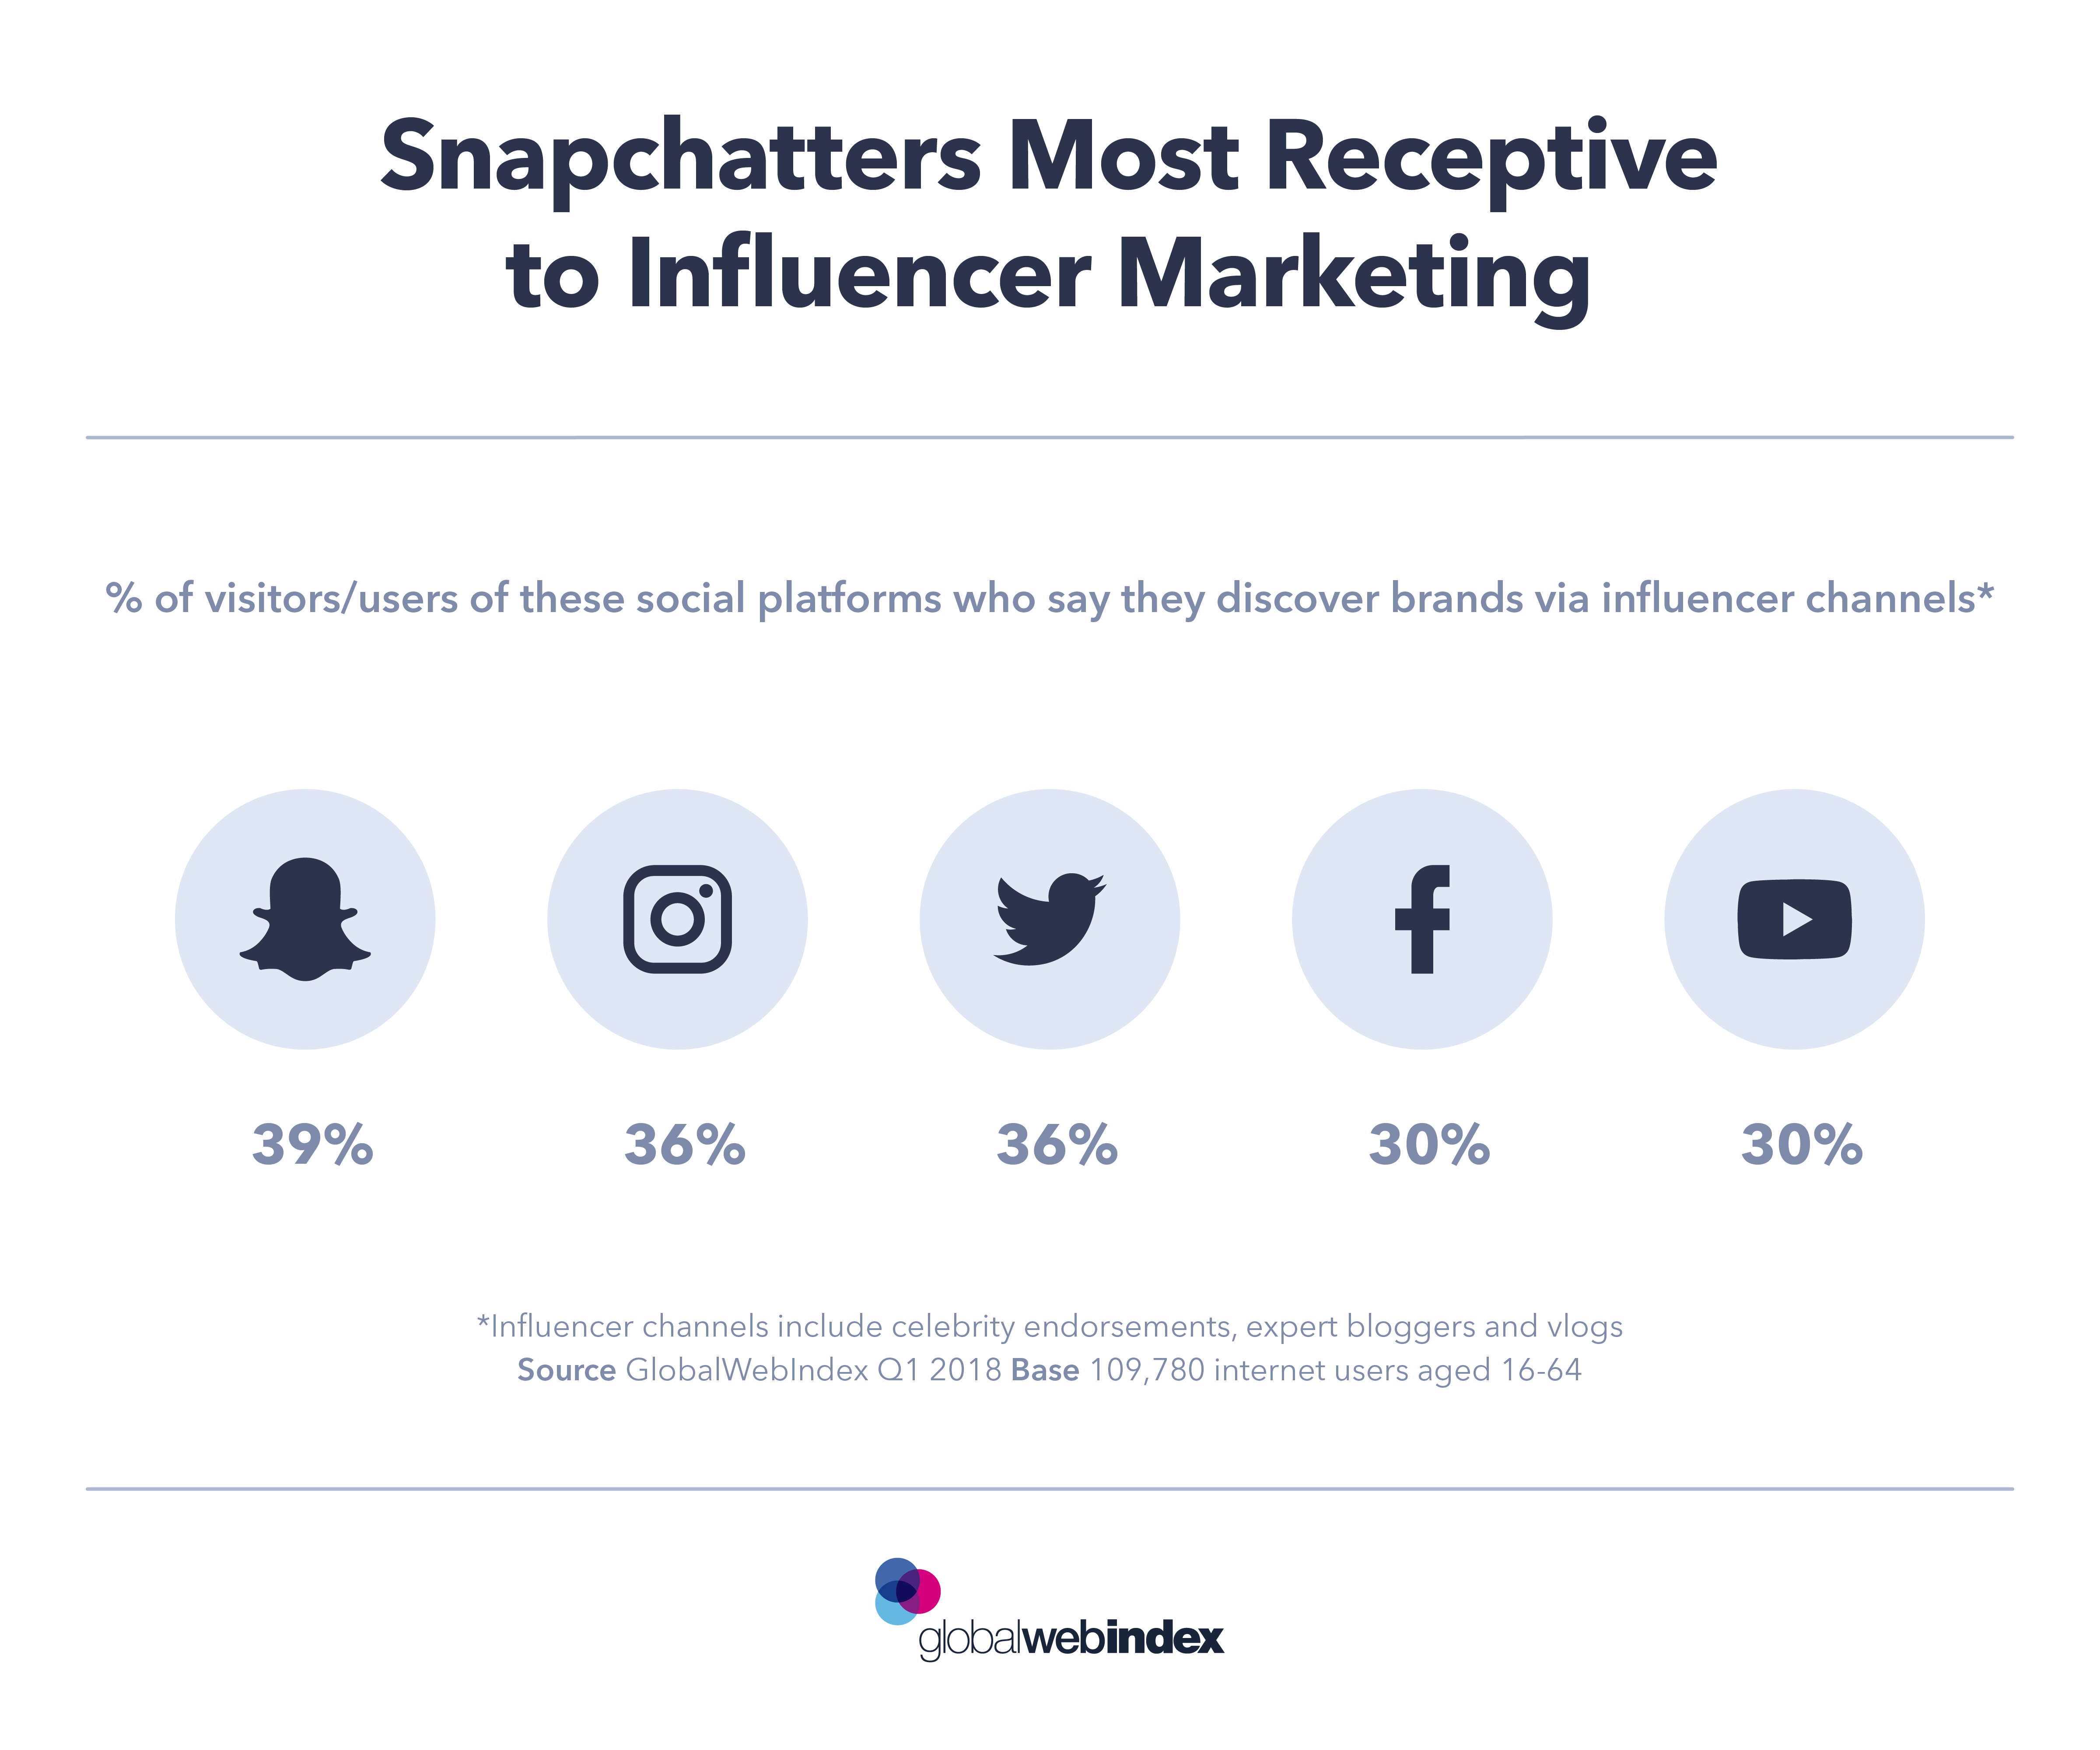 Global Media Users: Snapchatters Highly Receptive To Influencer Marketing